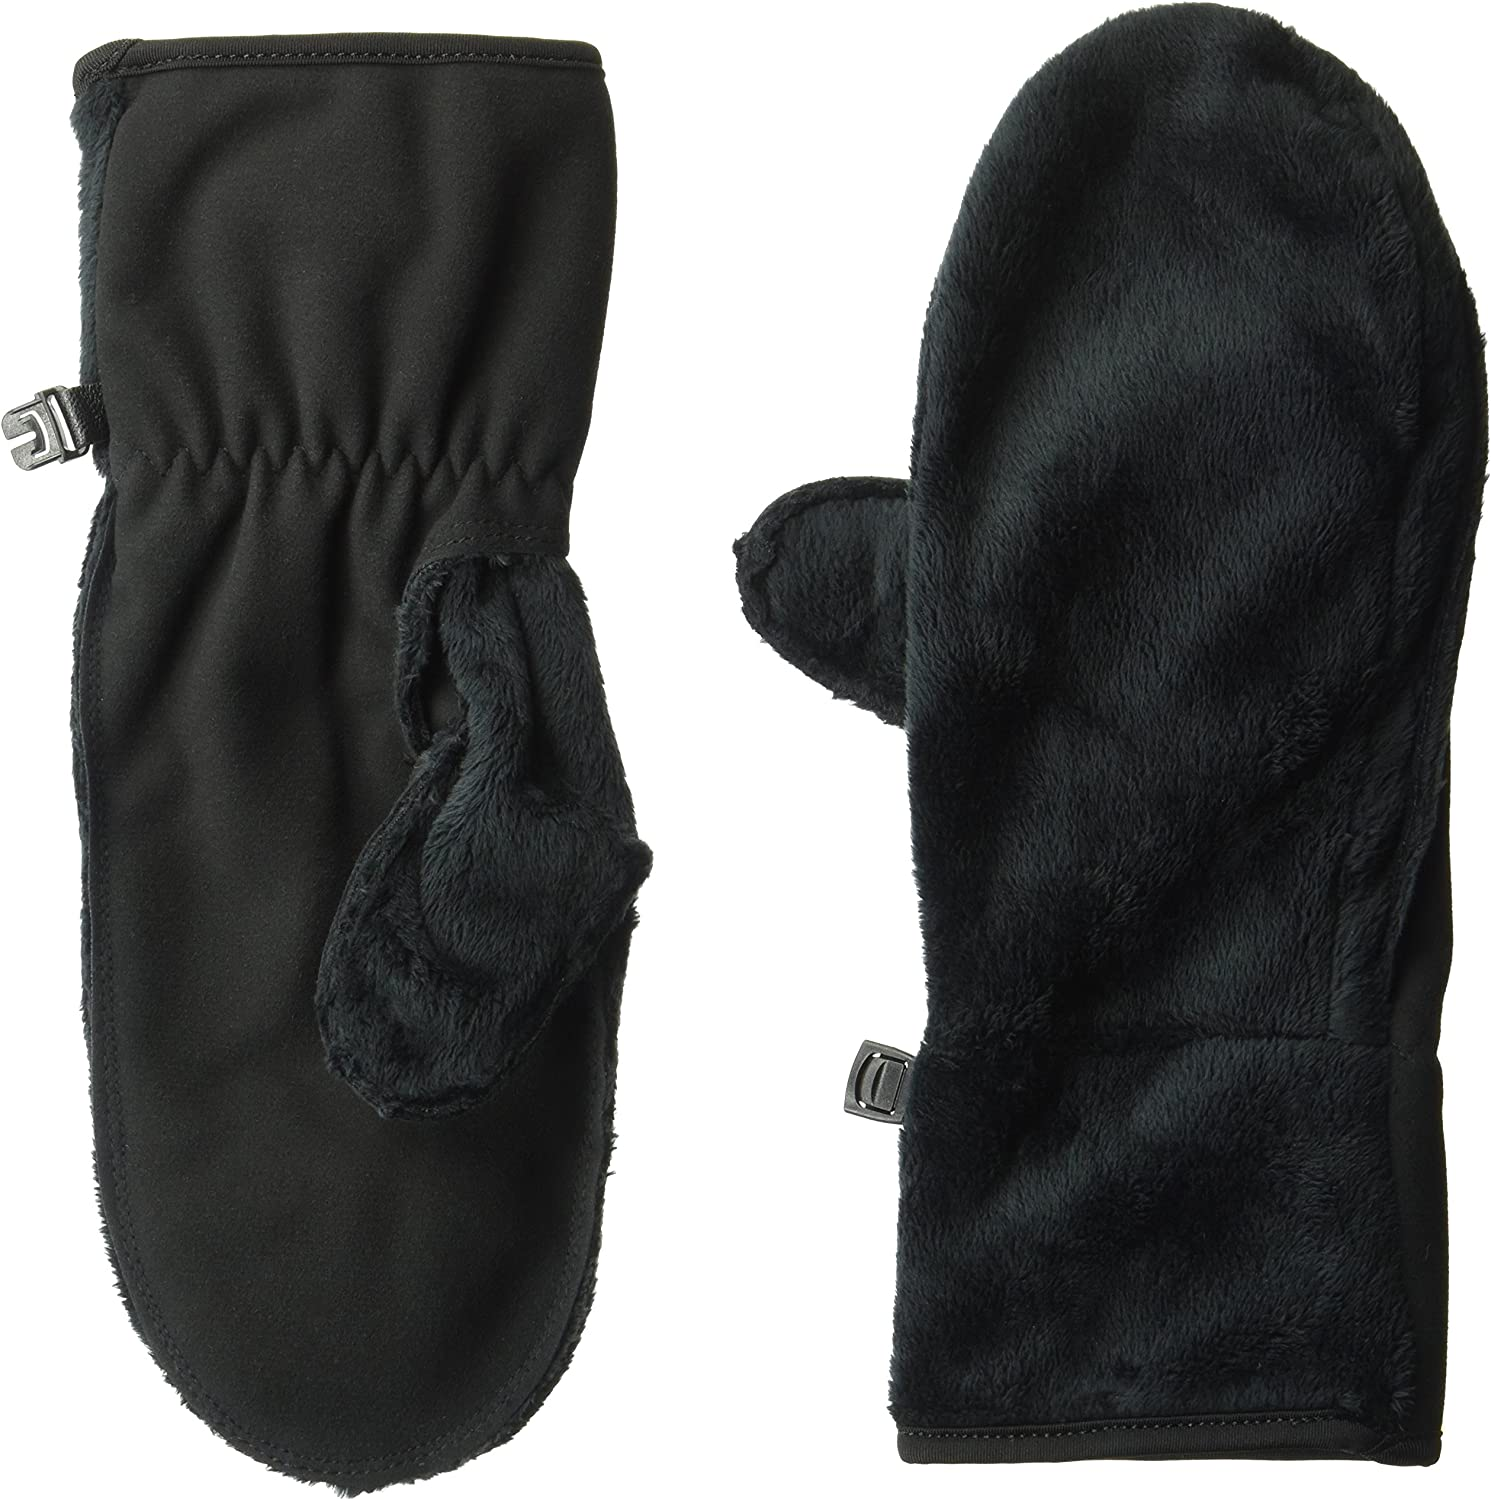 Outdoor Research Women's Casia Mitts